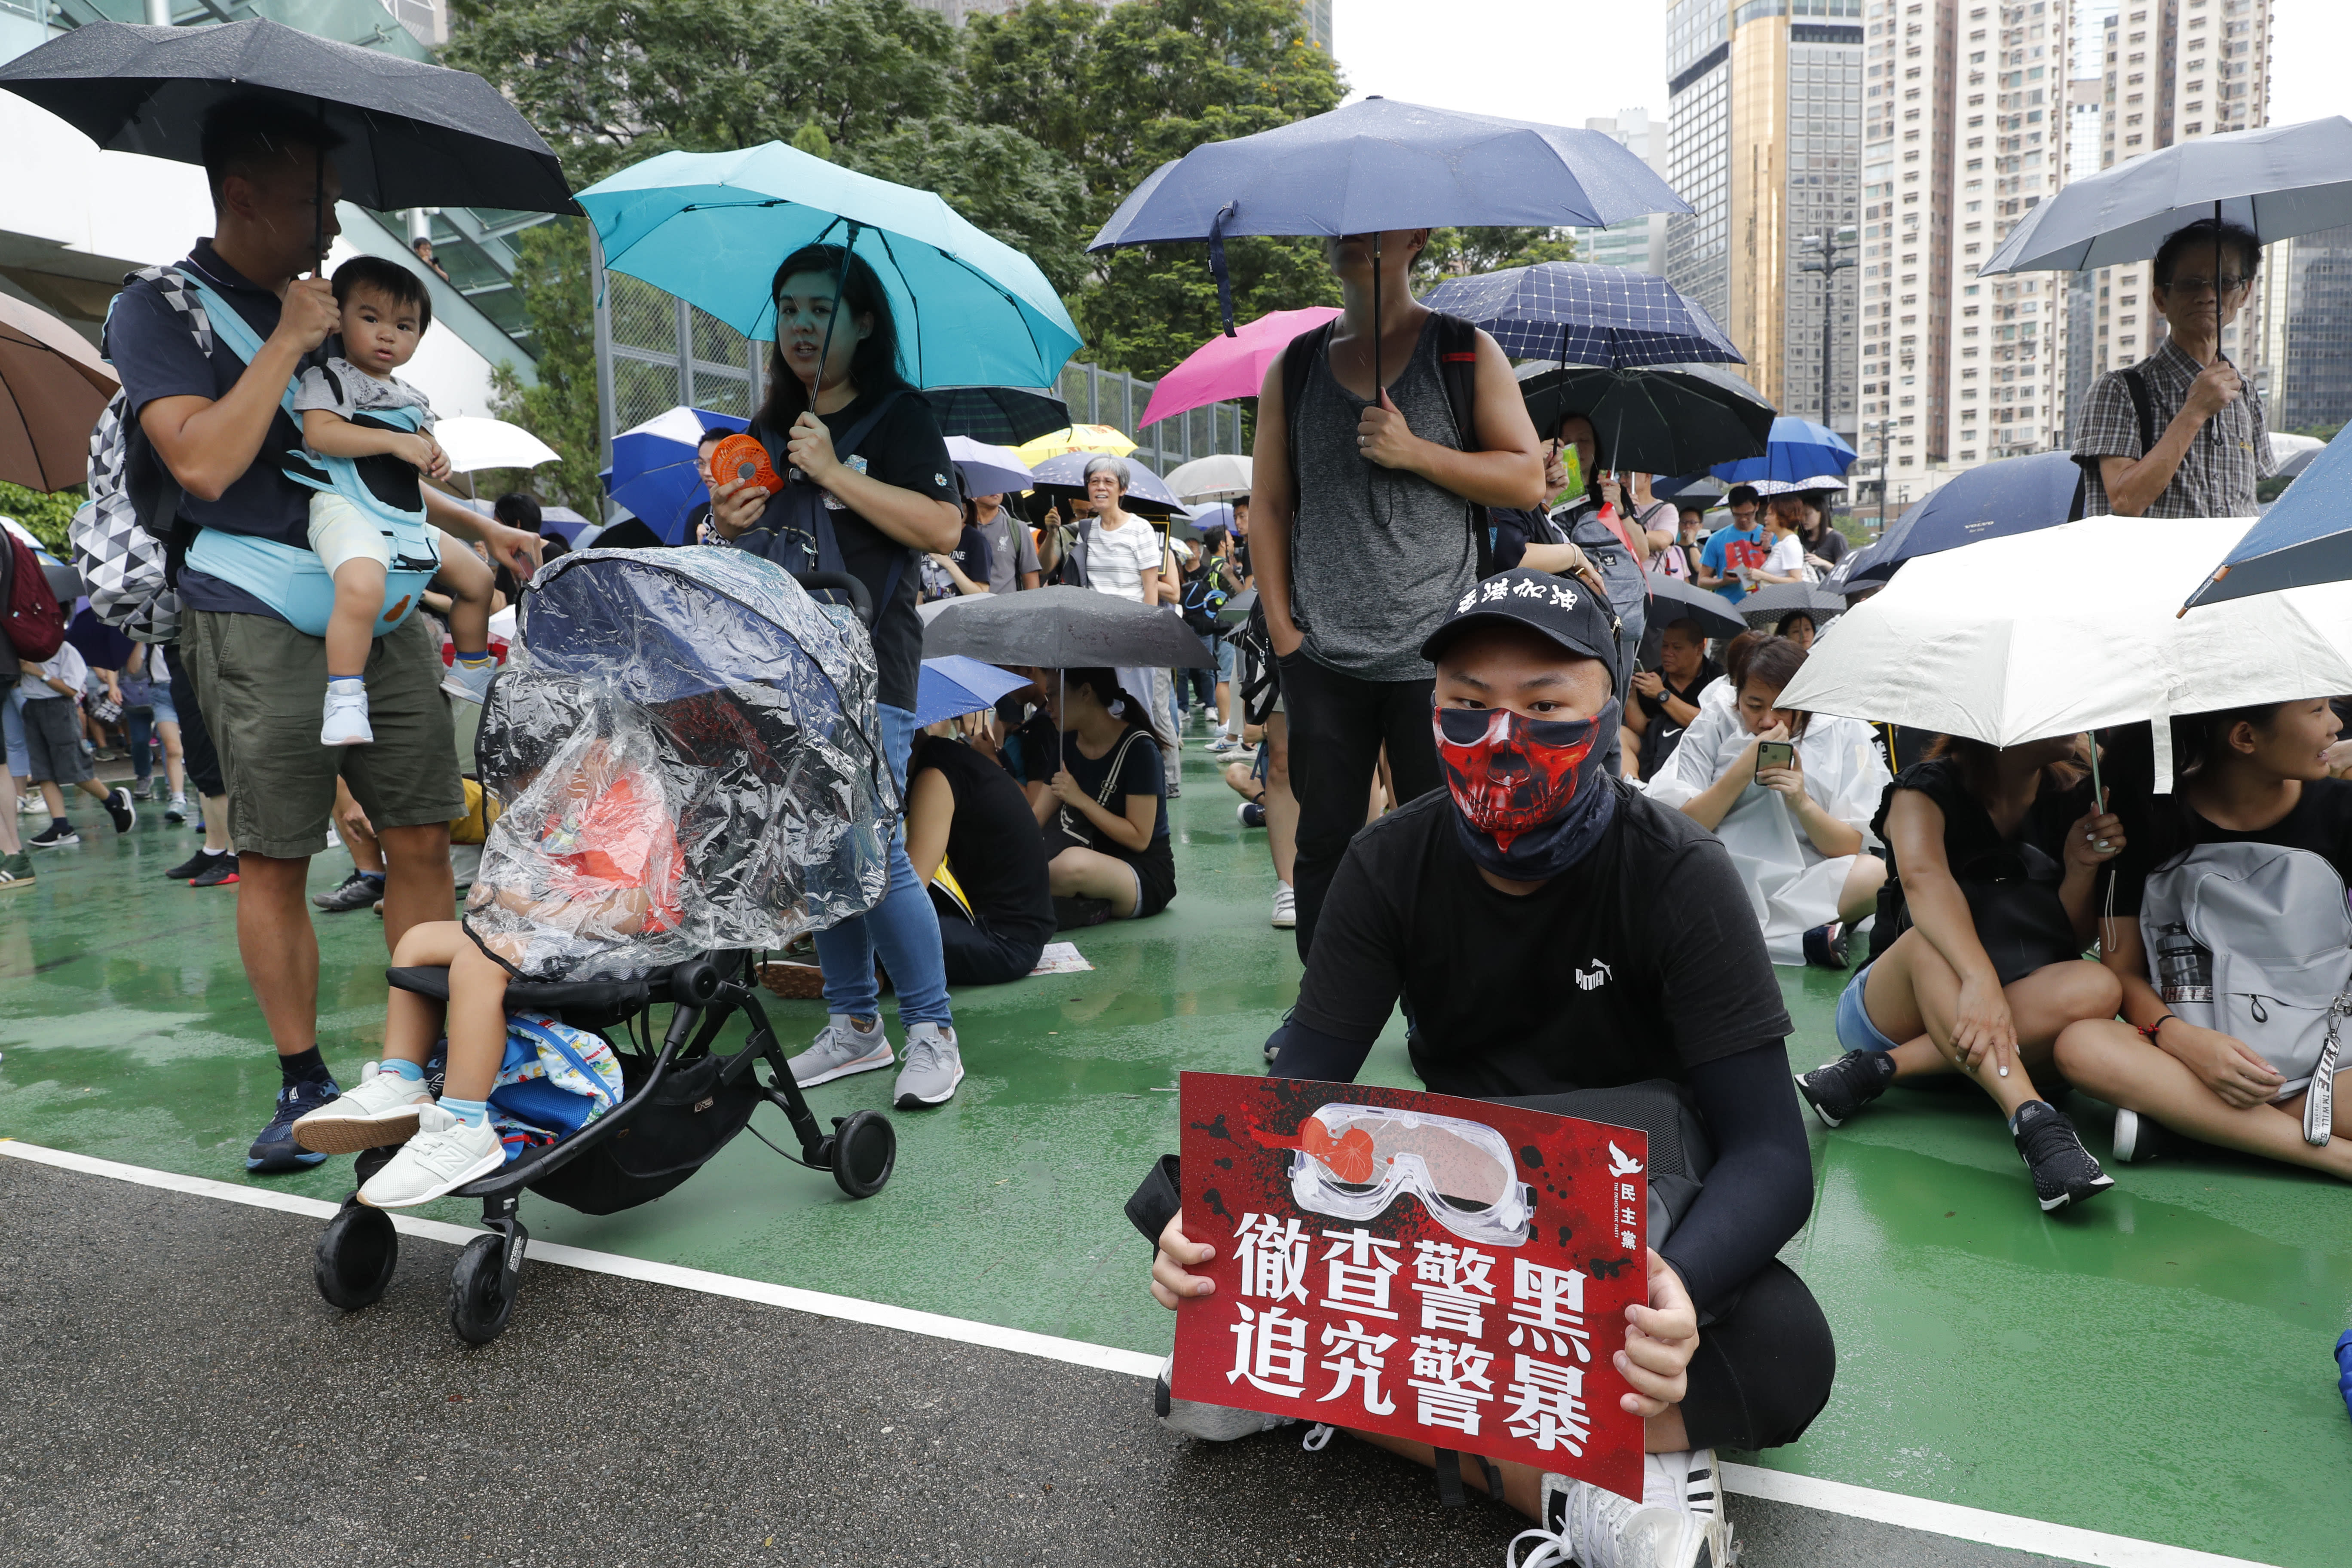 Hong Kong Protests Spill Over Into Opposing Boston Rallies